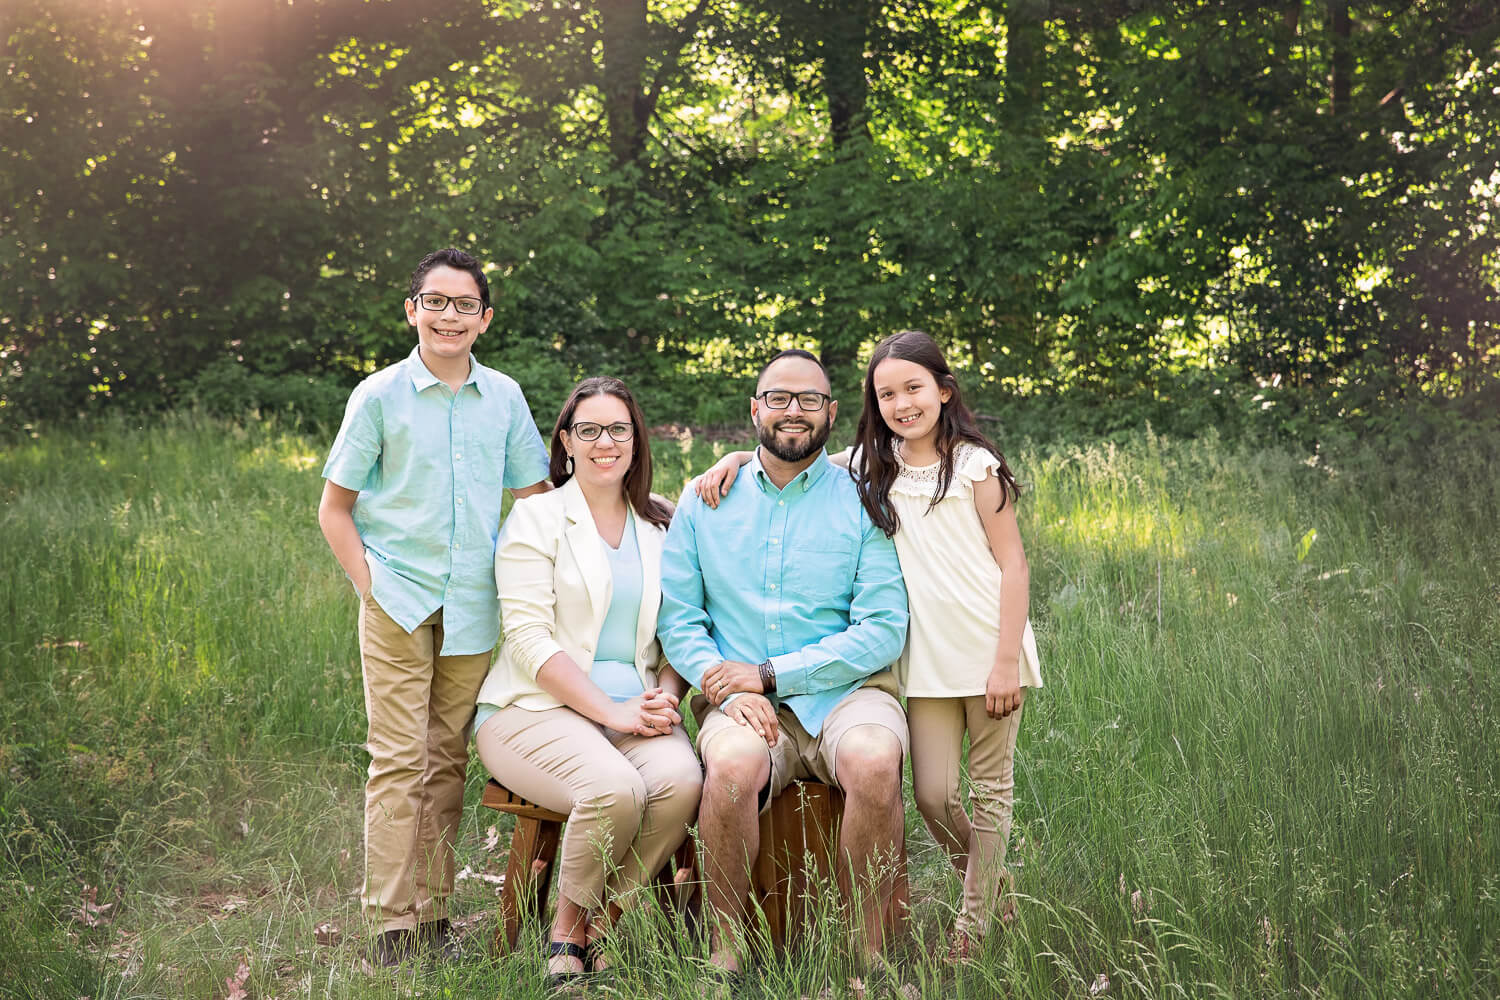 Family of 4 portrait surrounded by tall grasses and trees with sun rays shining on them